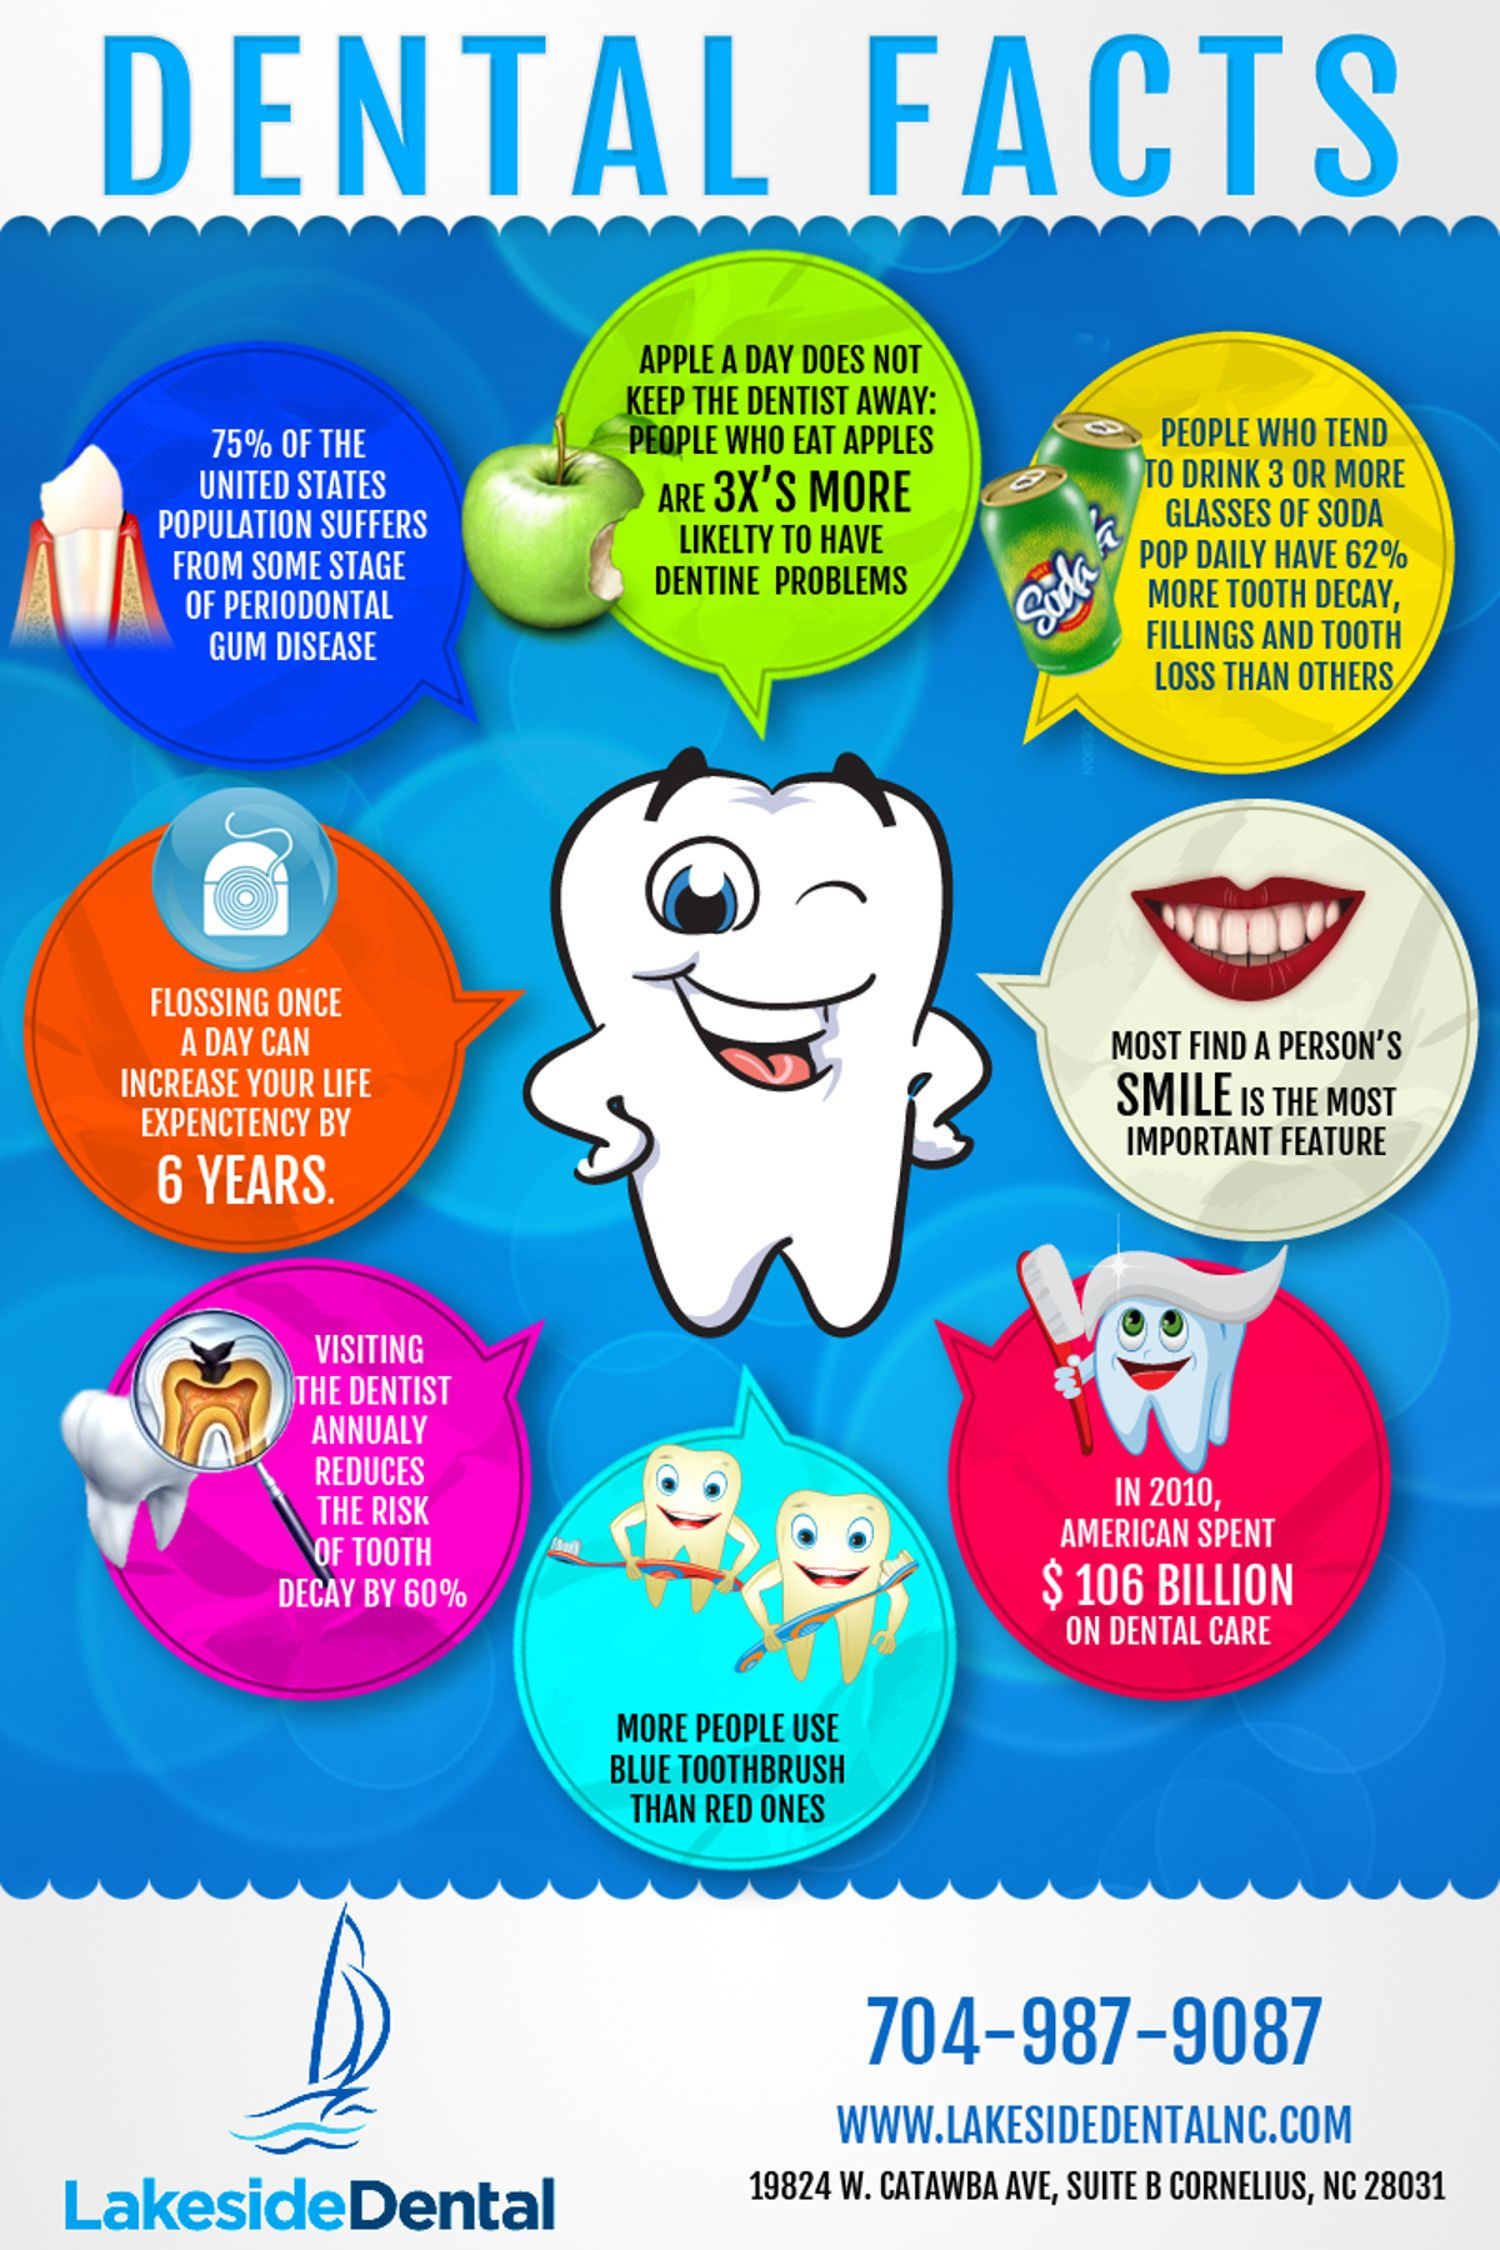 17 Best images about Dental Facts on Pinterest | At home, A smile ...